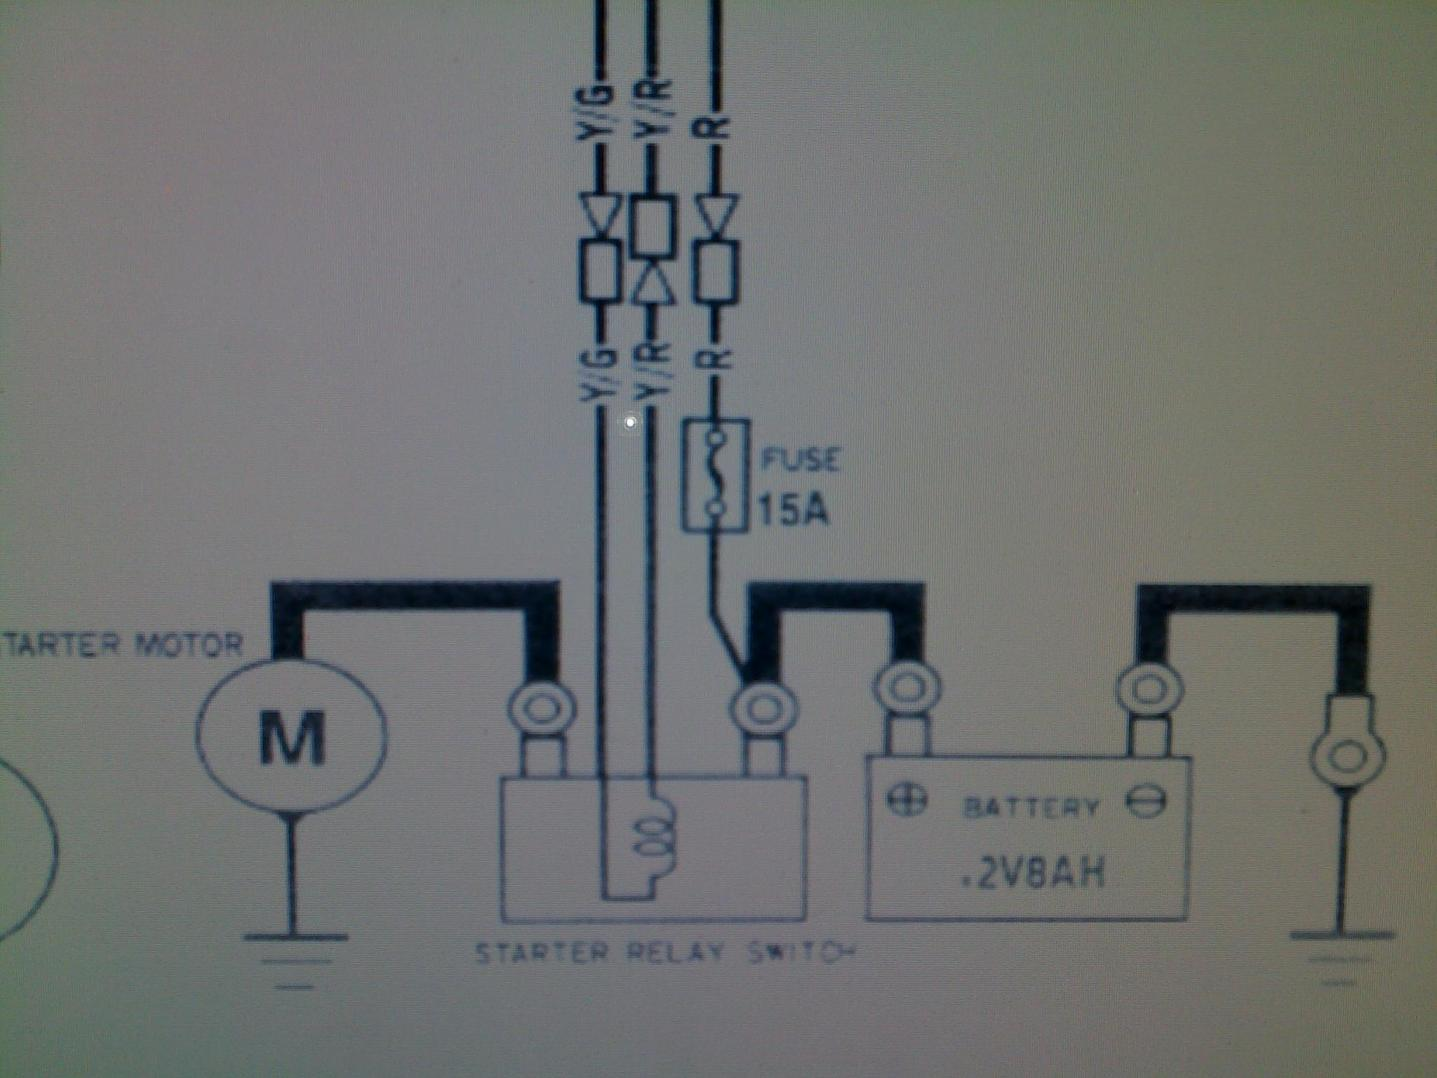 Wiring Diagram Honda Recon 250 Wiring Diagram Honda Trx 250 Atv Honda